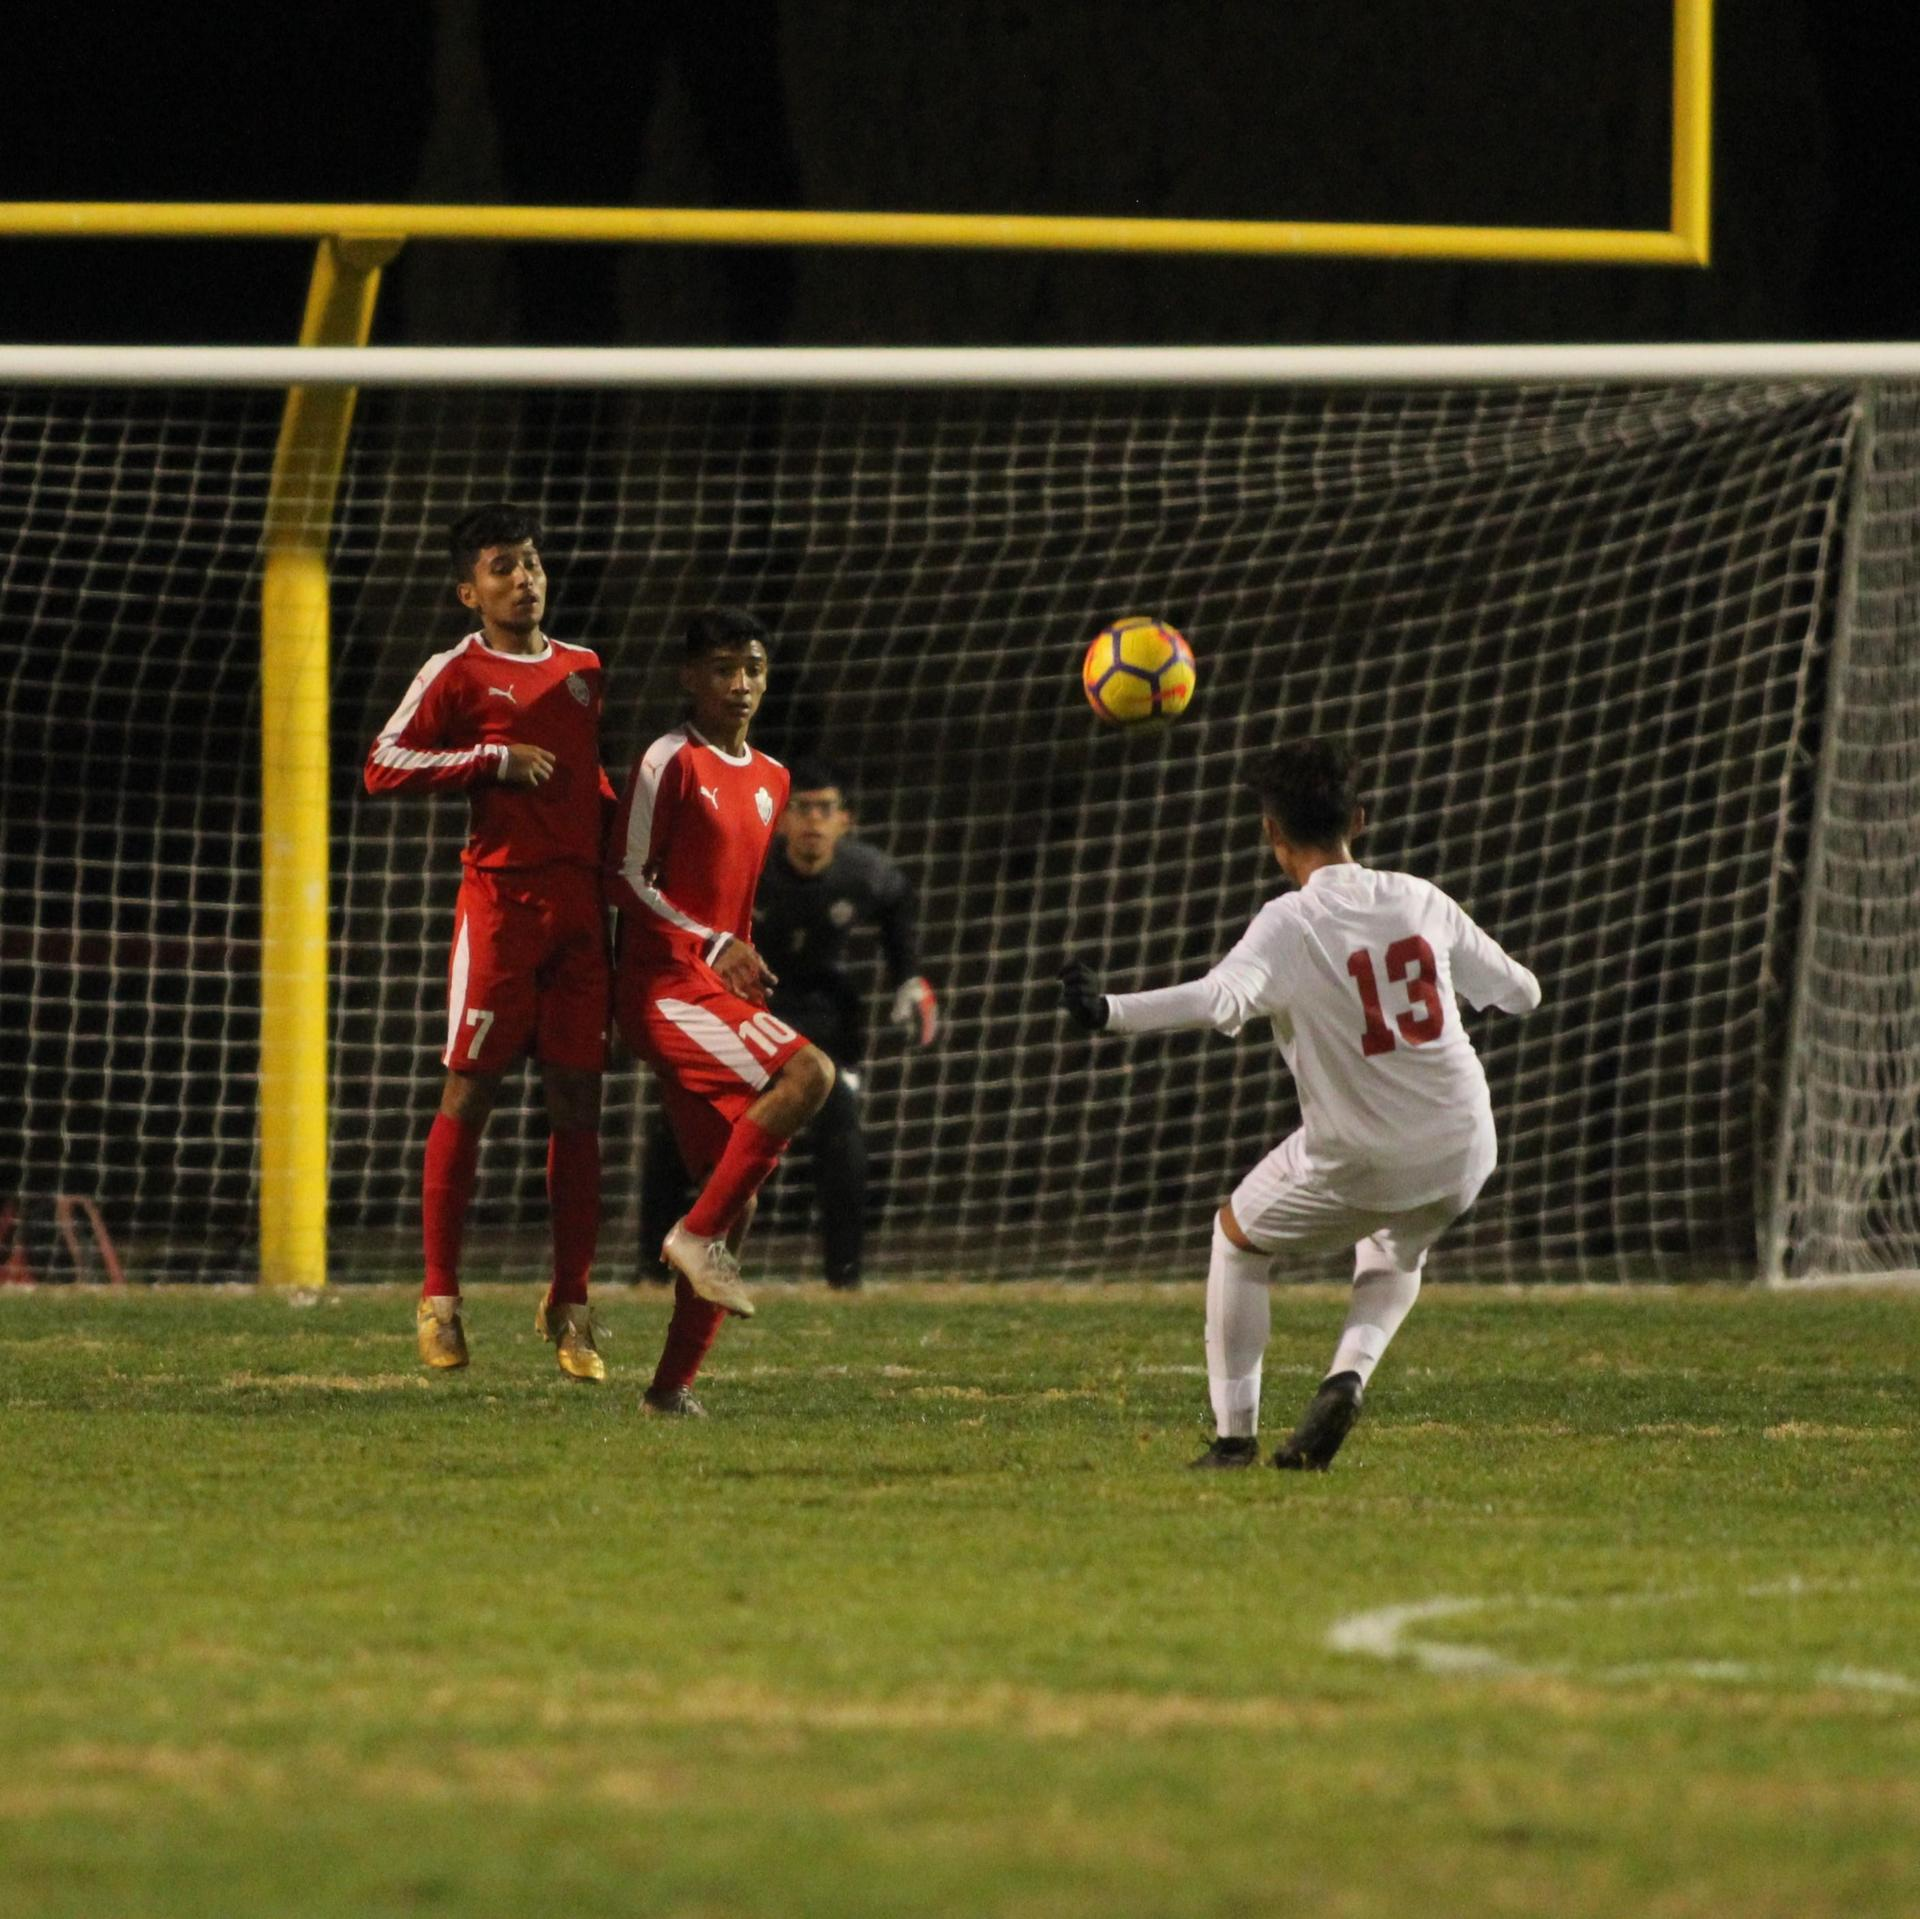 Luis Reyes and Jacob Corchado going to stop the ball